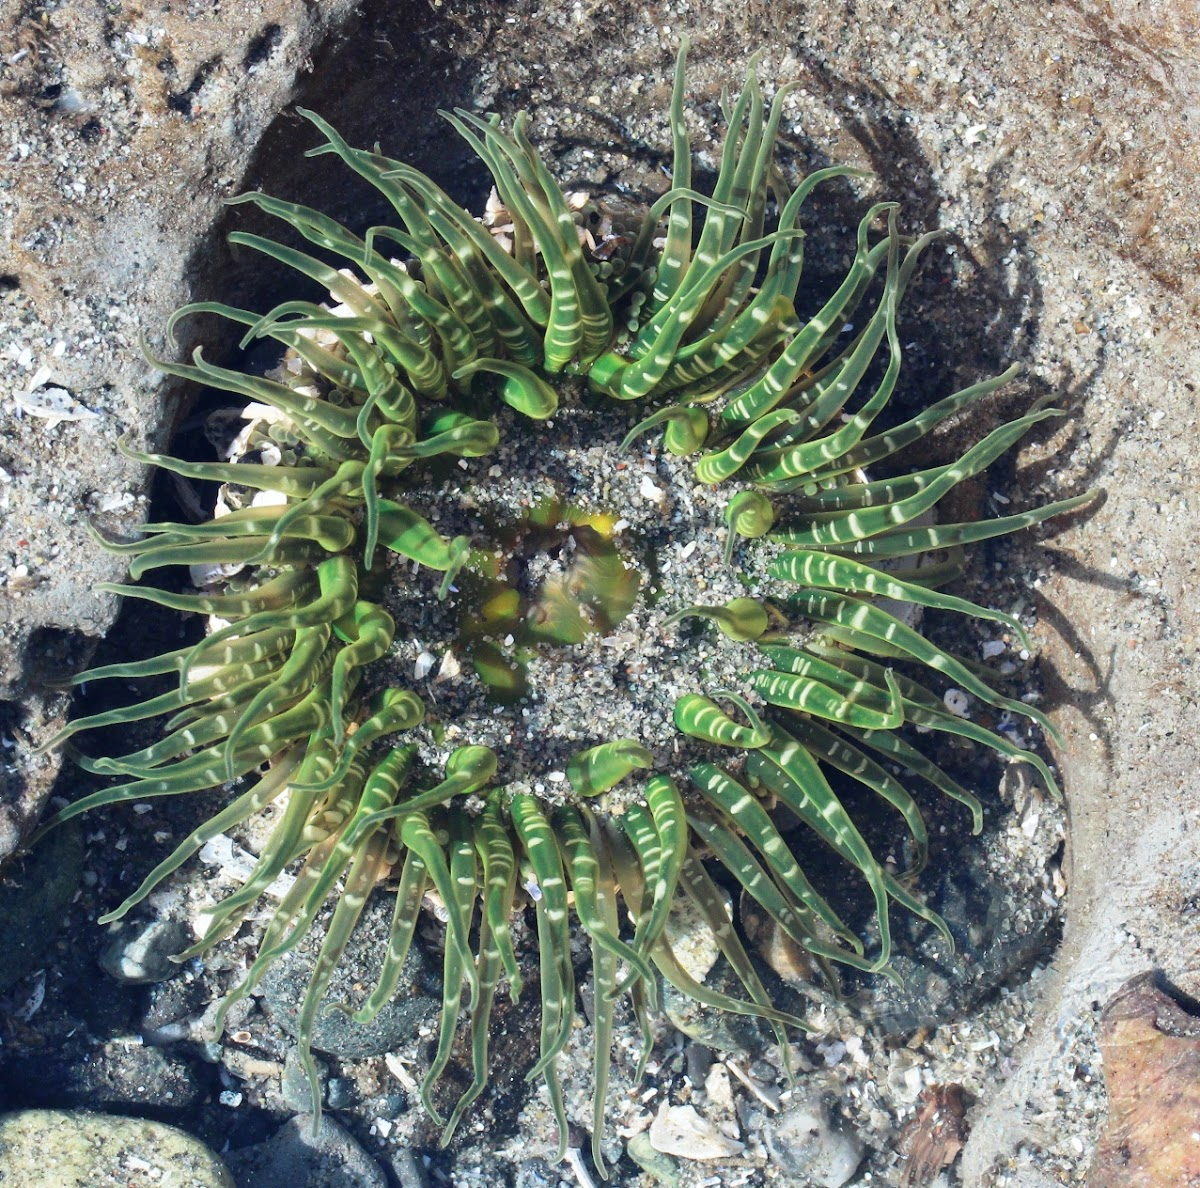 Burrowing anemone